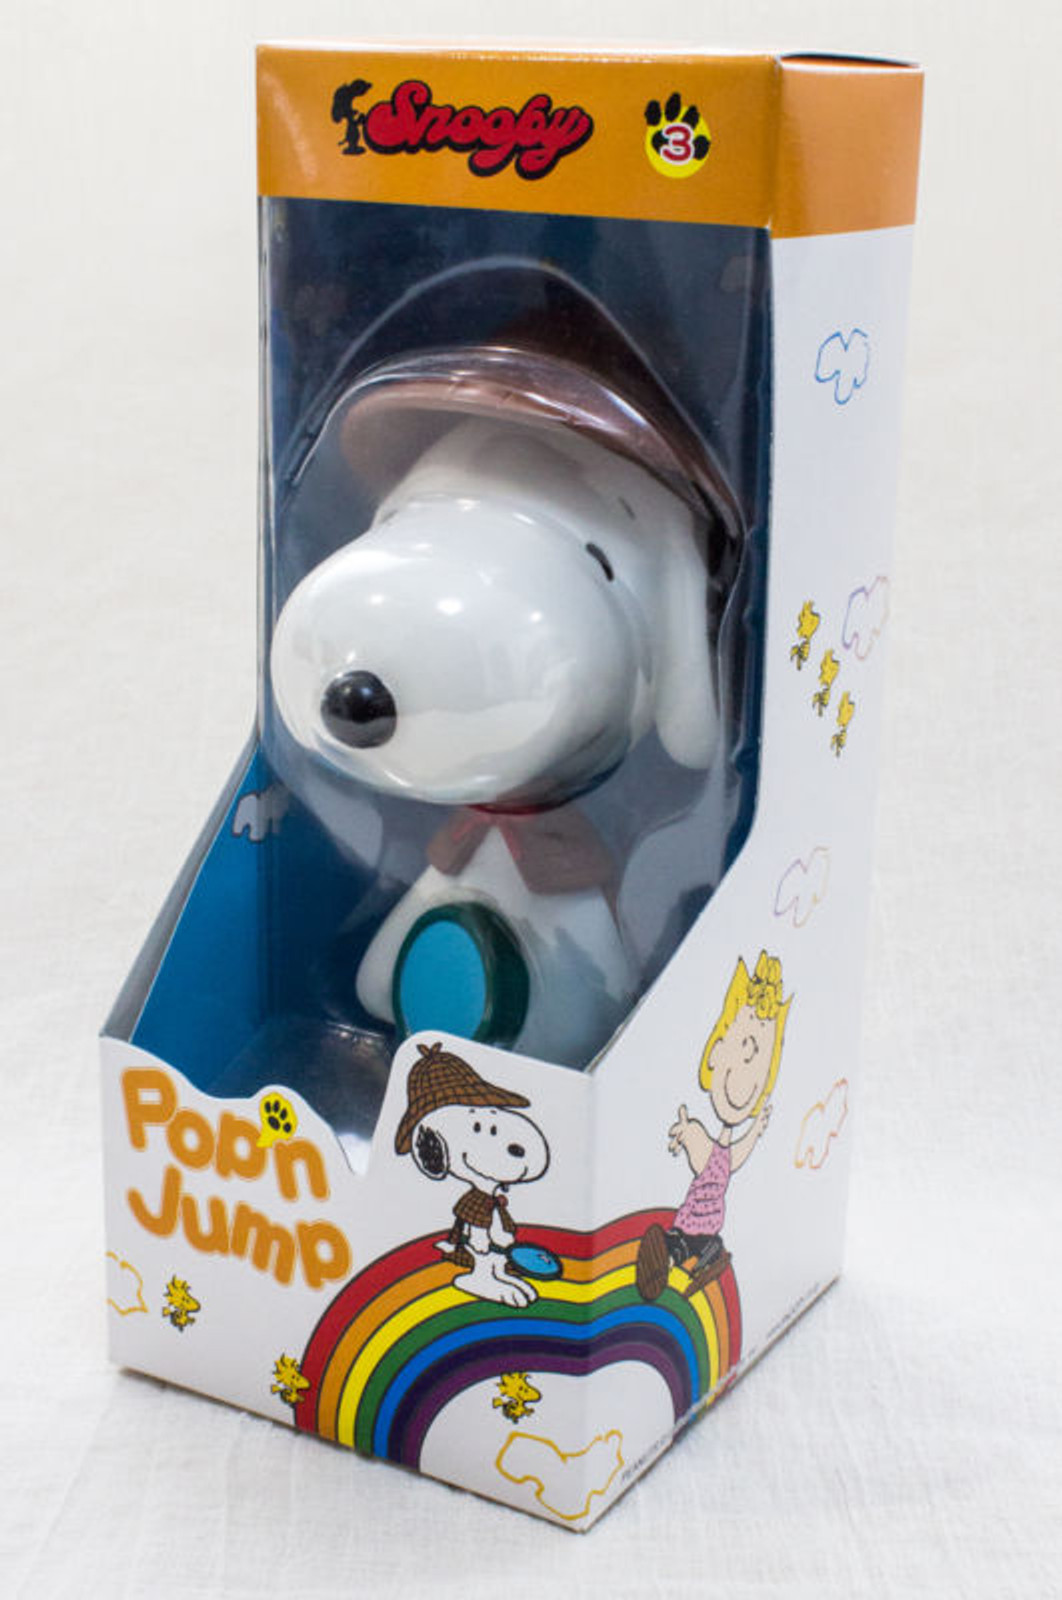 Snoopy Detective Pop'n Jump Figure La Chere Toy Peanuts JAPAN ANIME